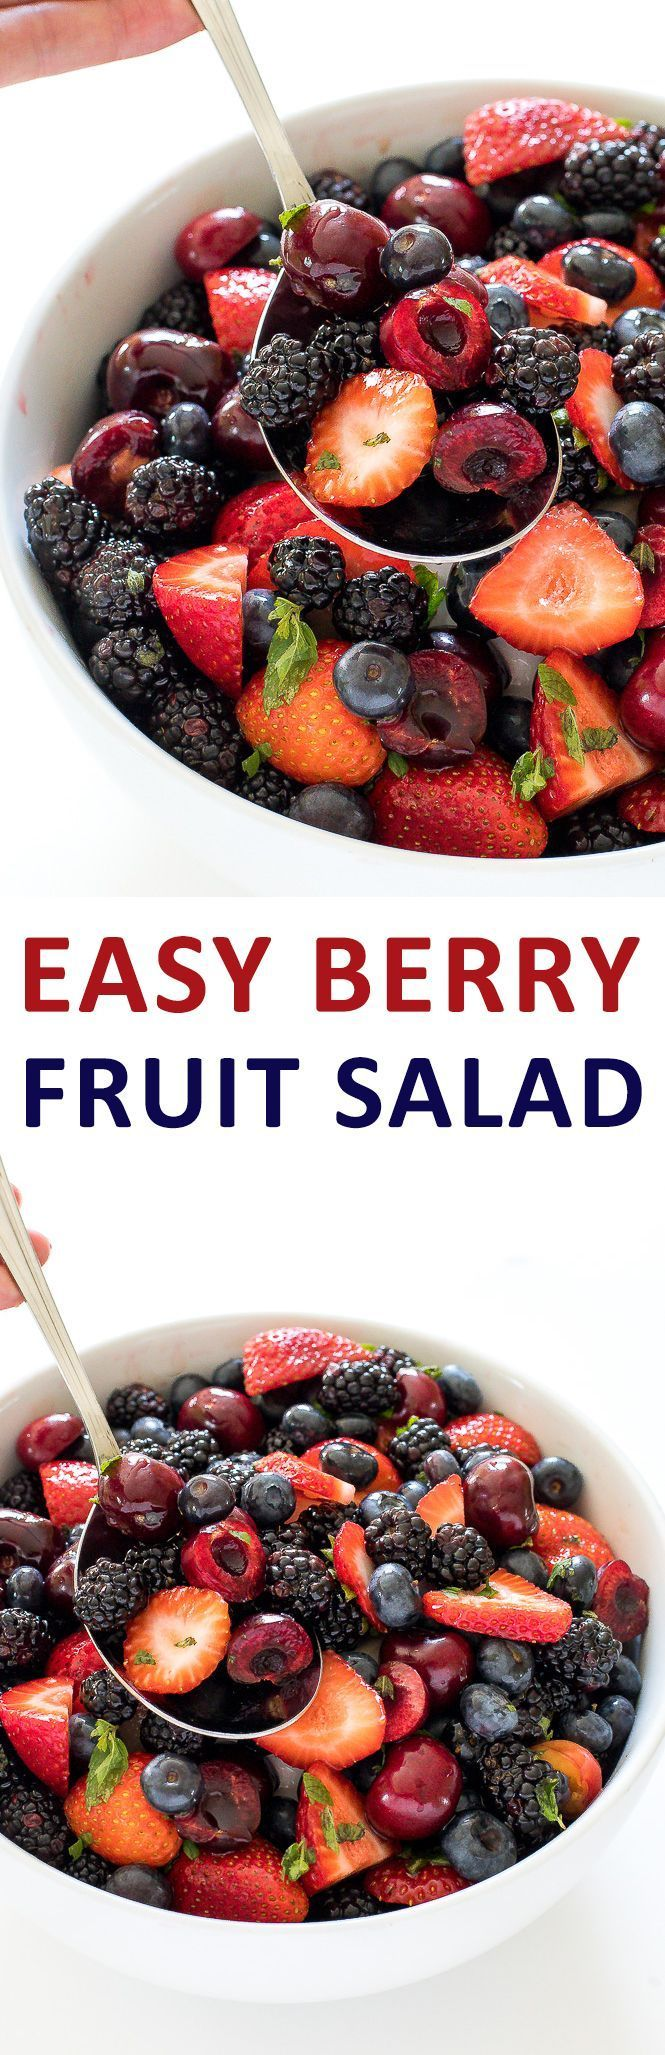 Berry Fruit Salad loaded with fresh fruit and tossed ina honey lime dressing. The perfect dessert or side dish for summer!   chefsavvy.com #recipe #berry #fruit #salad #healthy #fruit #summer